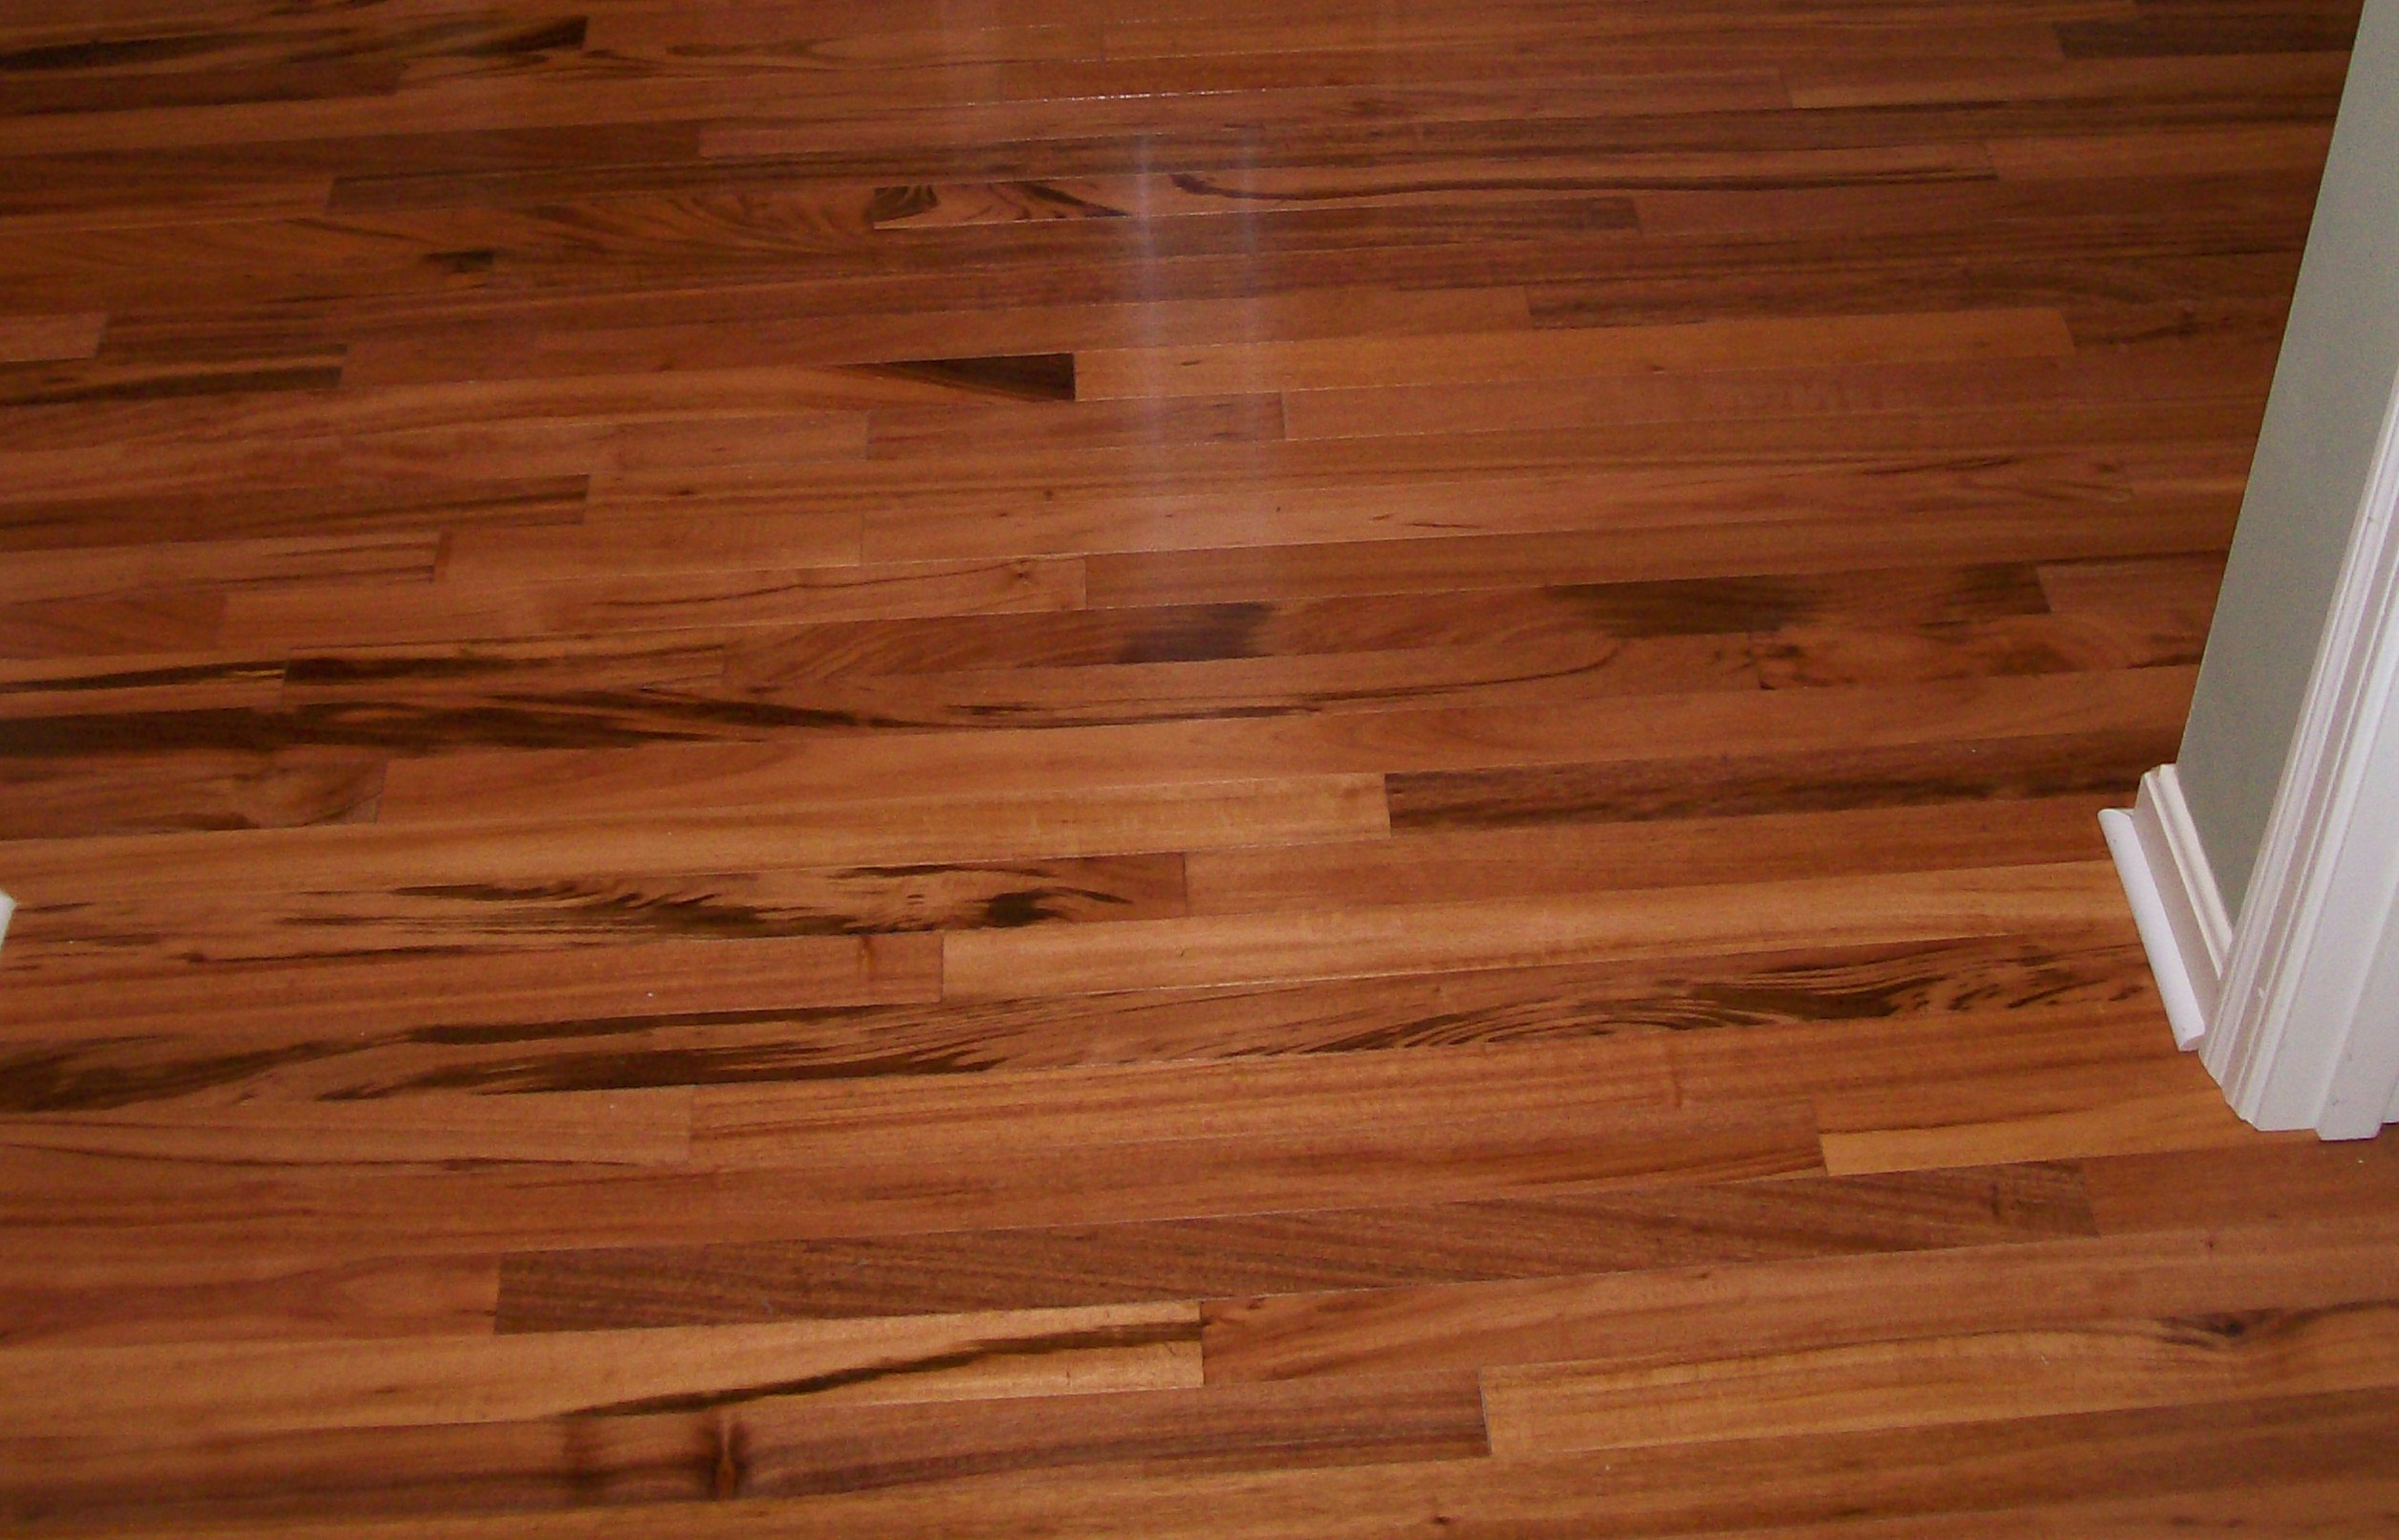 Waterproof Laminate Flooring For Basement Ideas Design